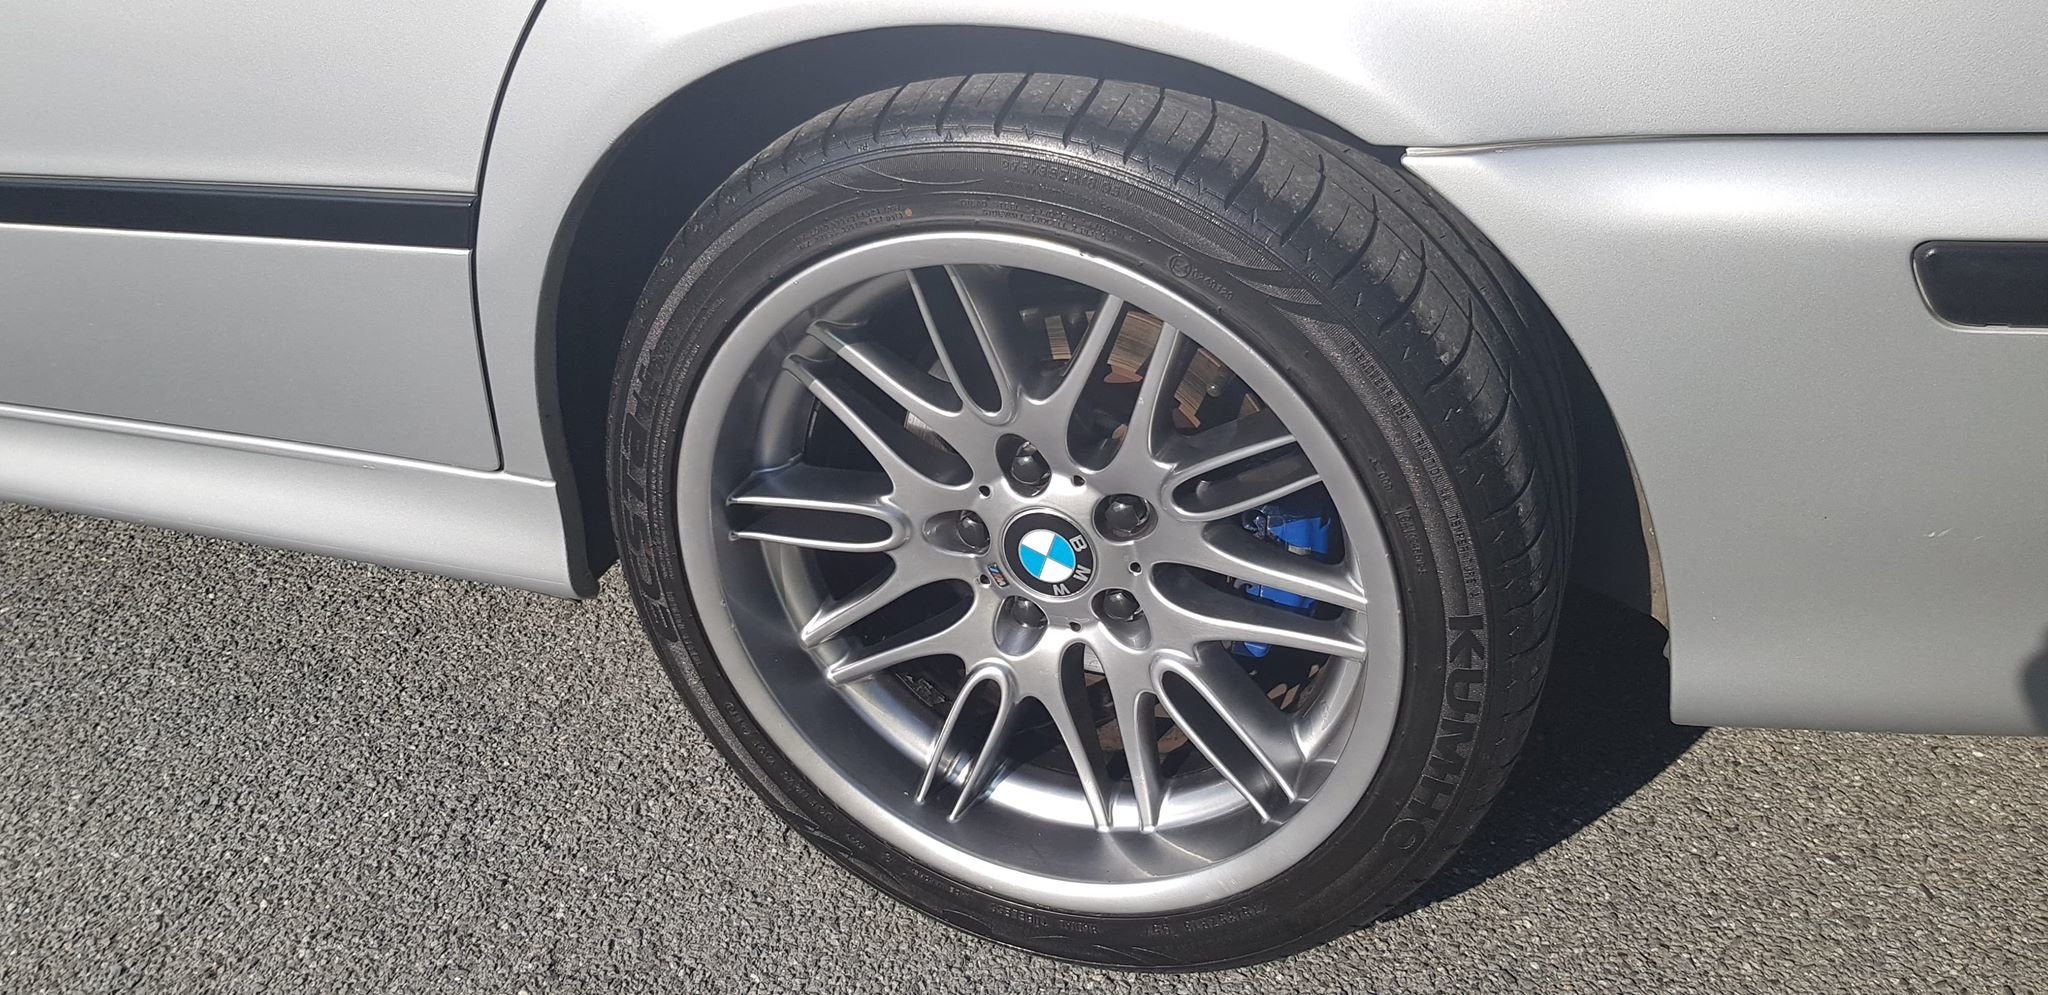 2001 Bmw 530i m-sport auto immaculate For Sale (picture 6 of 6)